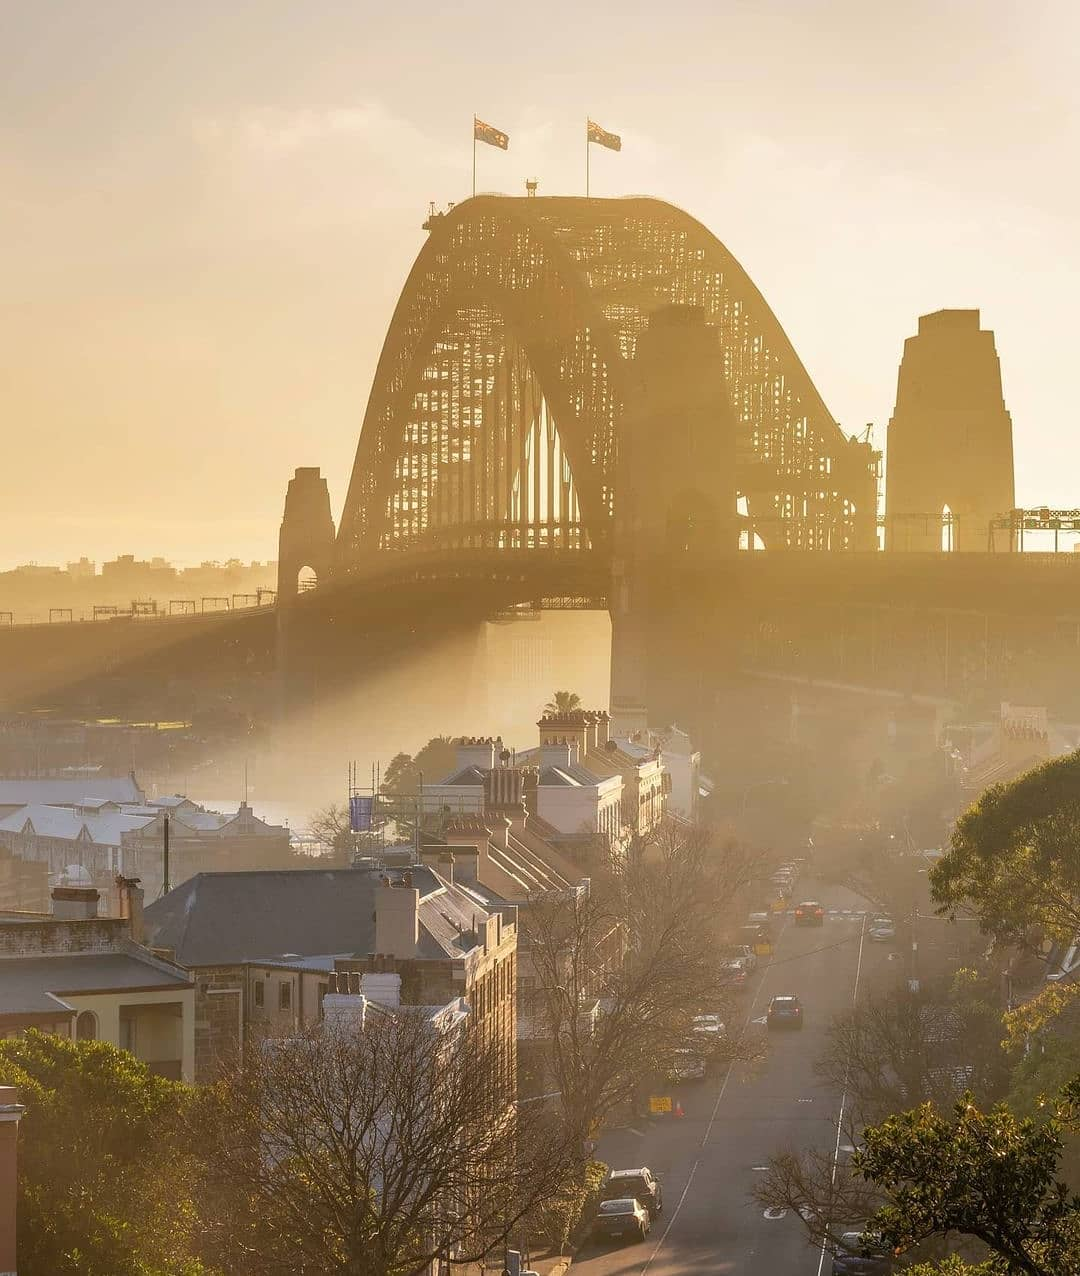 Sydney has a variety of very interesting tourist destinations such as historical sites, parks, beaches and other amazing places.